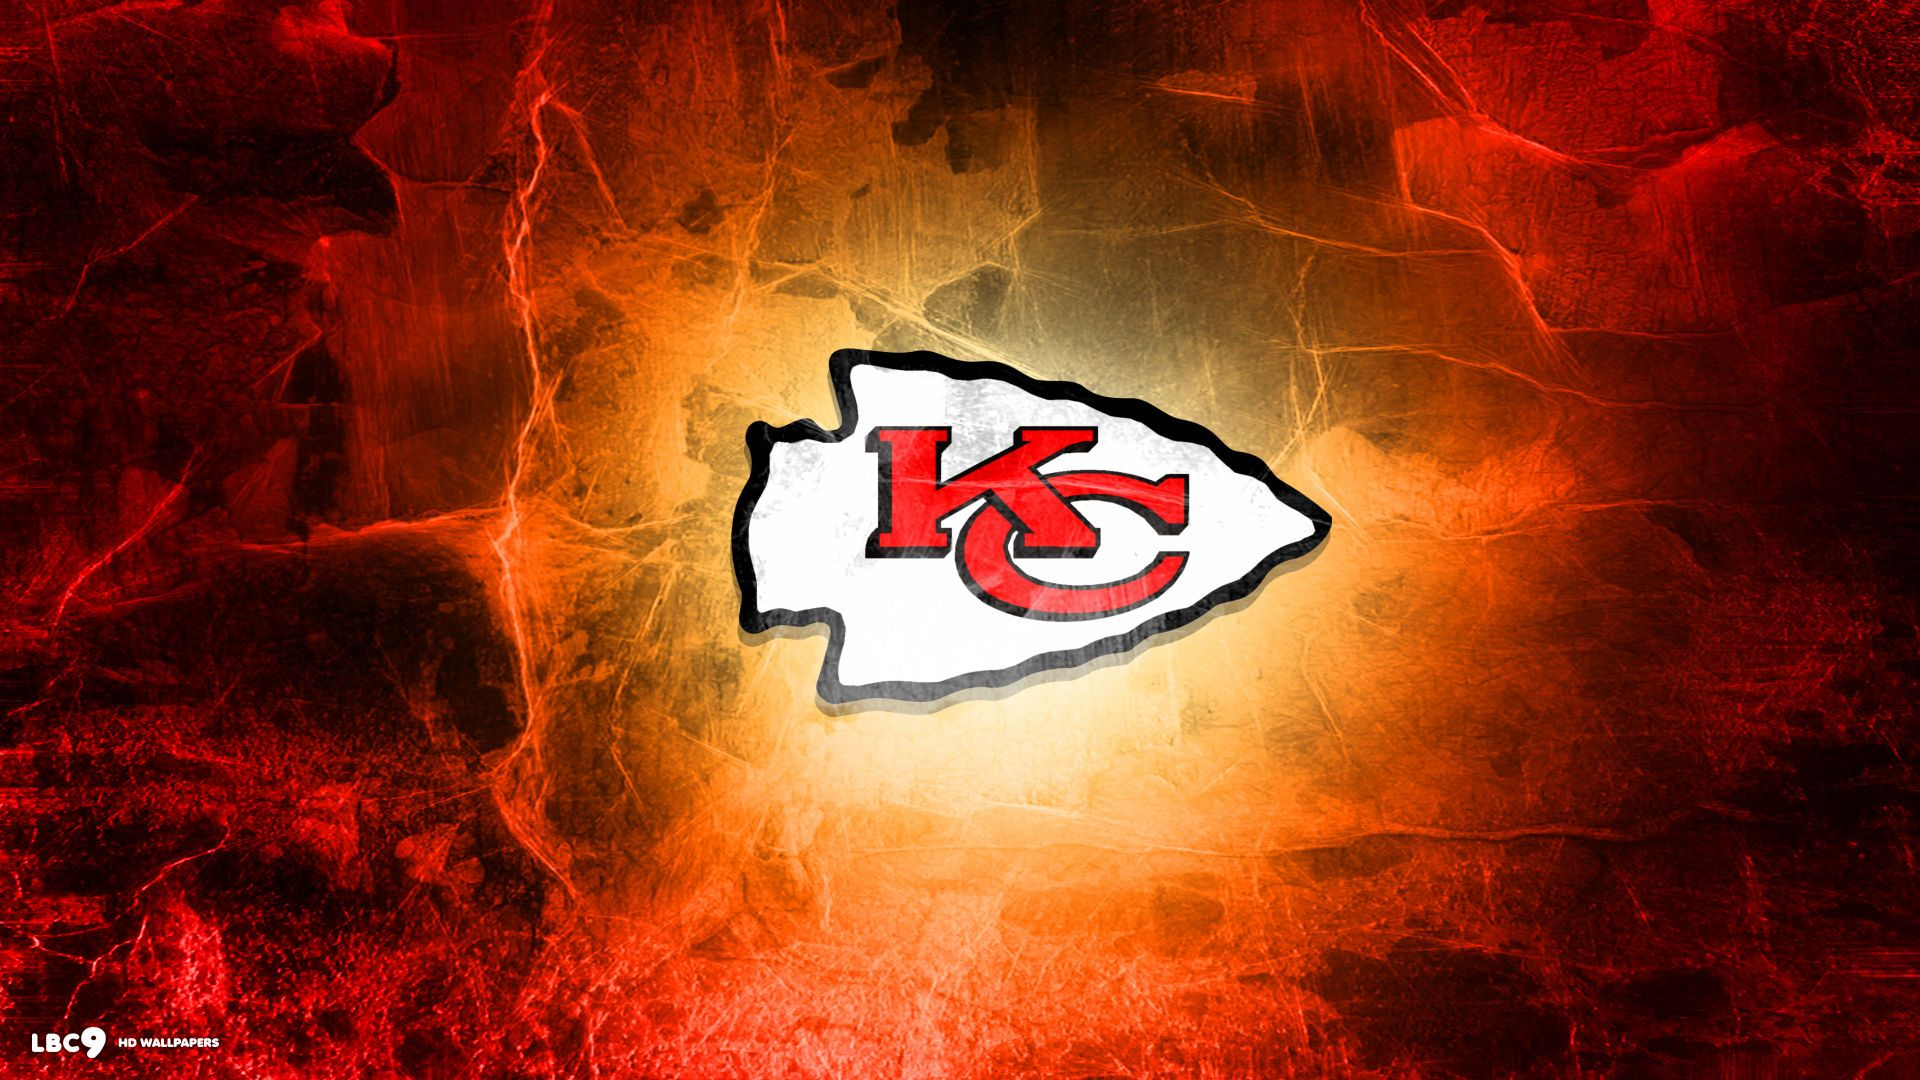 kc chiefs background Google Search Kansas city chiefs